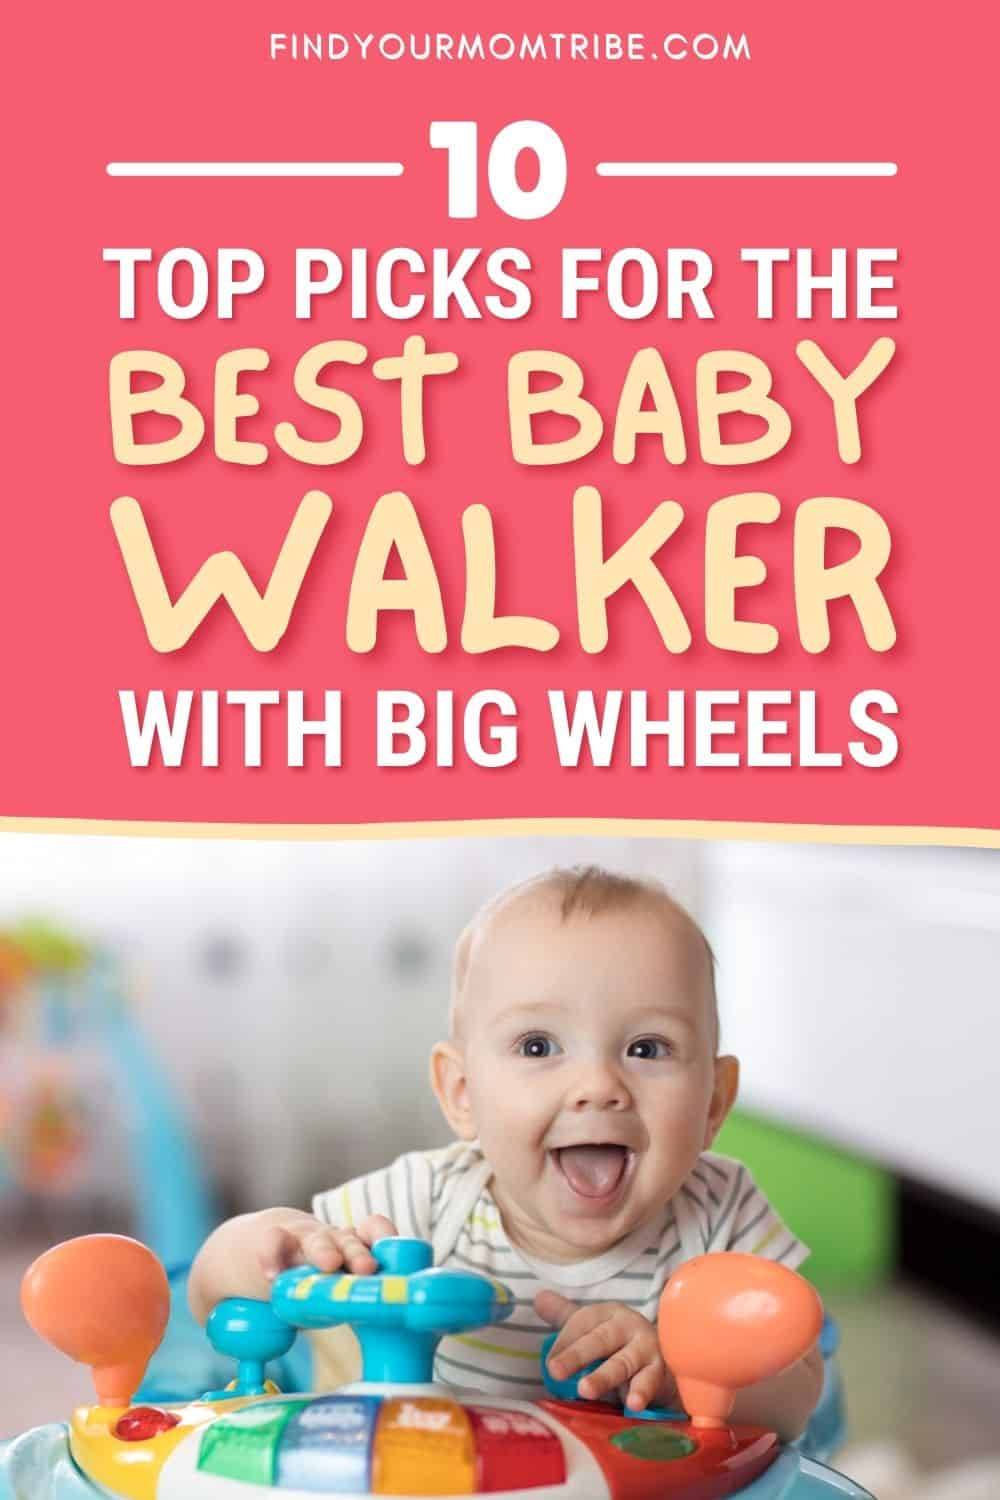 10 Top Picks For The Best Baby Walker With Big Wheels Pinterest